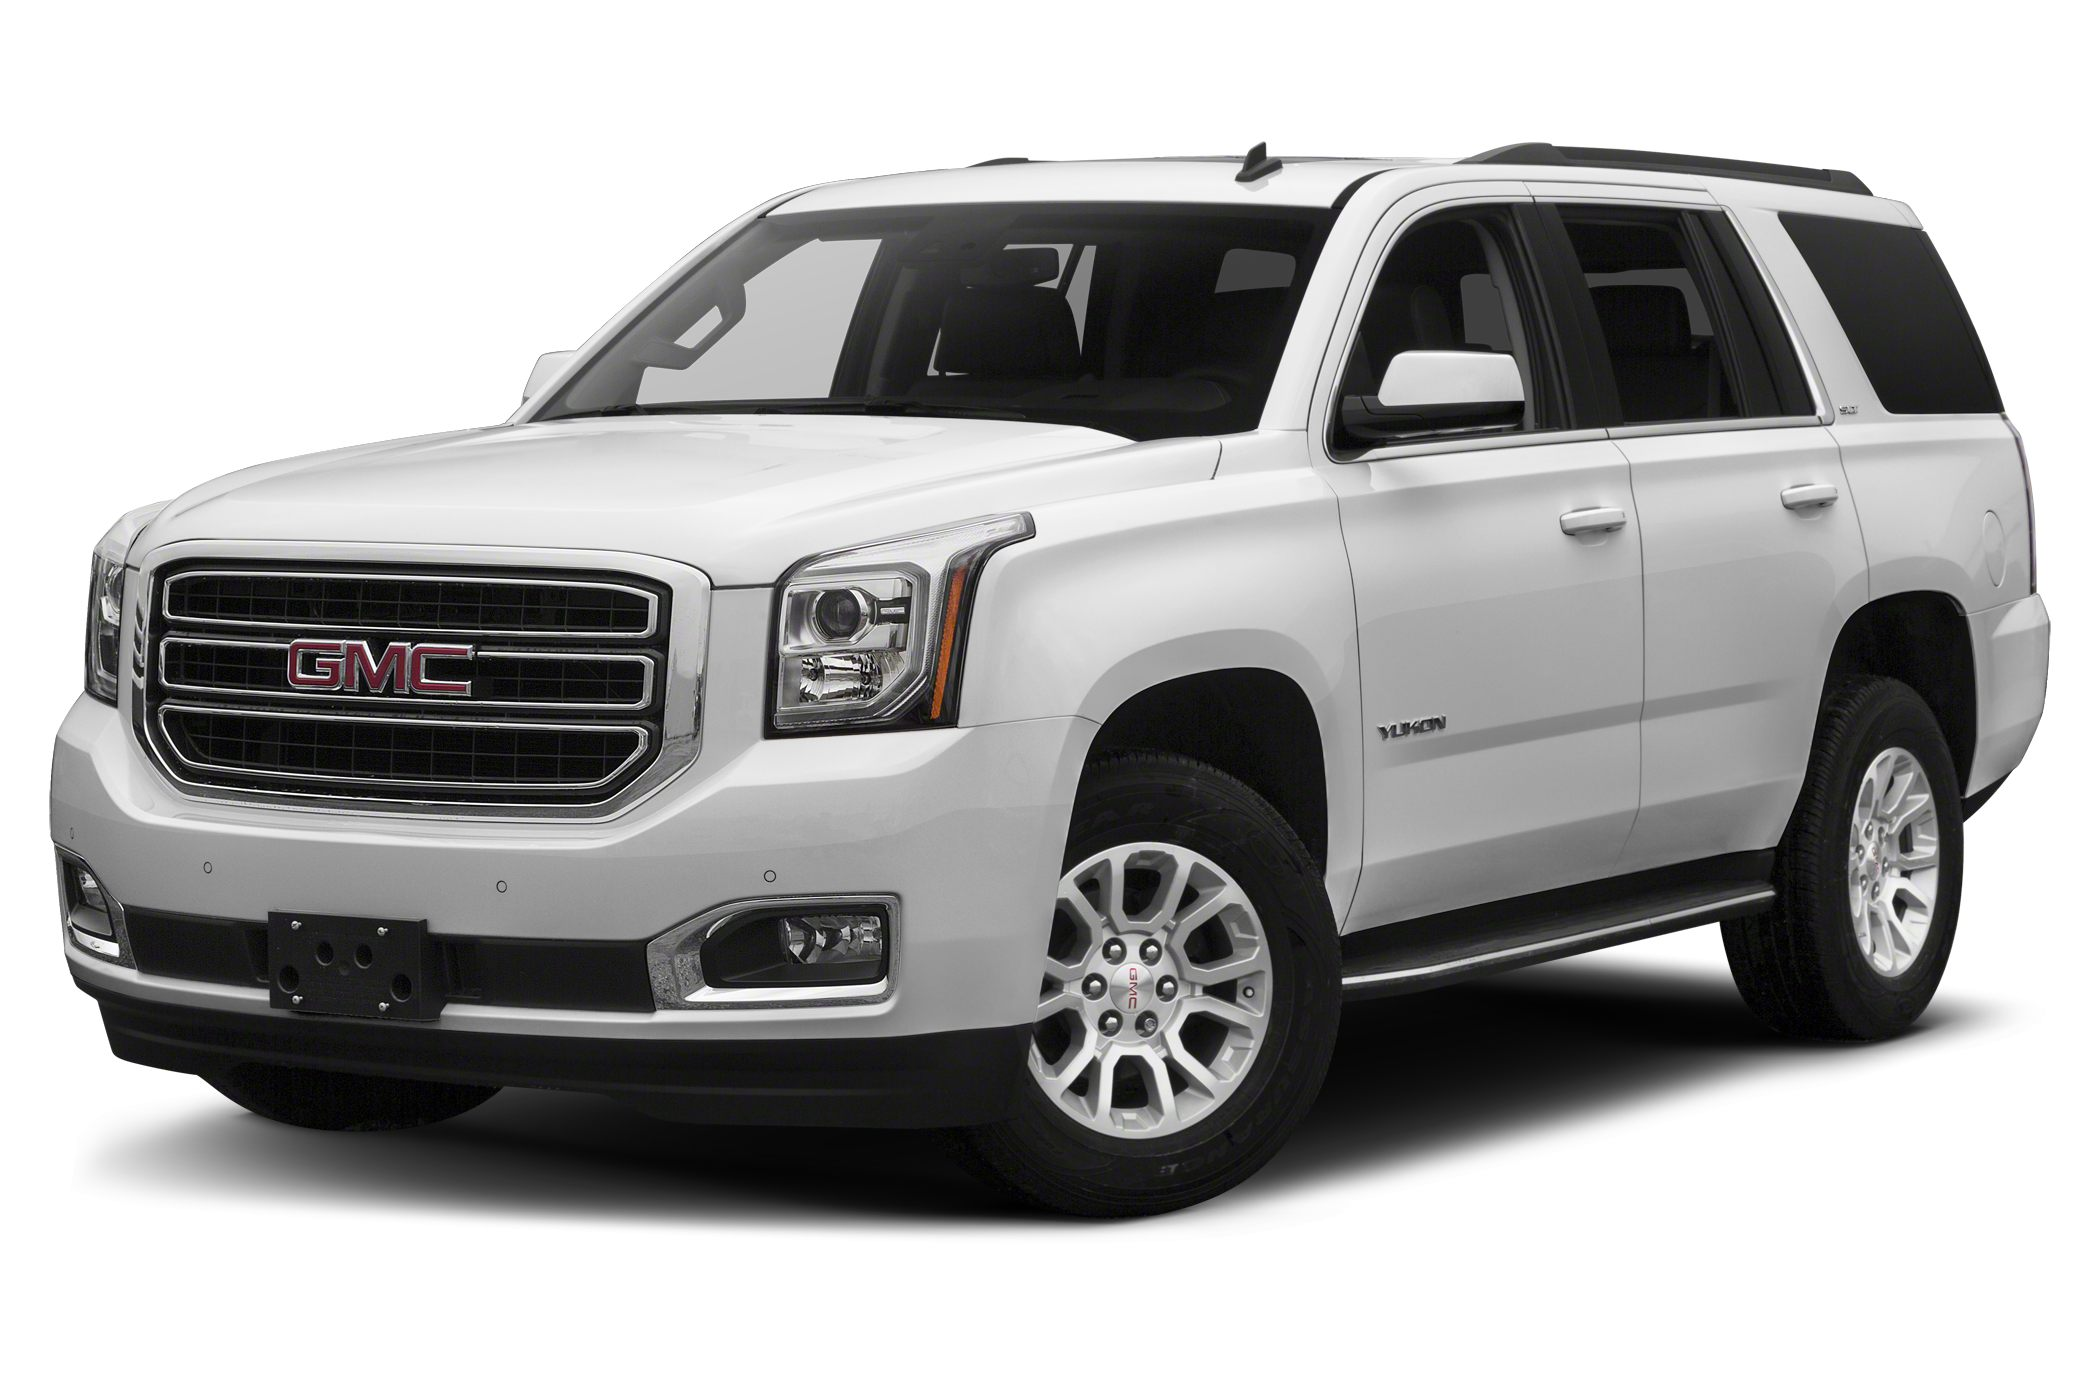 2015 GMC Yukon SLT SUV for sale in Greeley for $68,405 with 20 miles